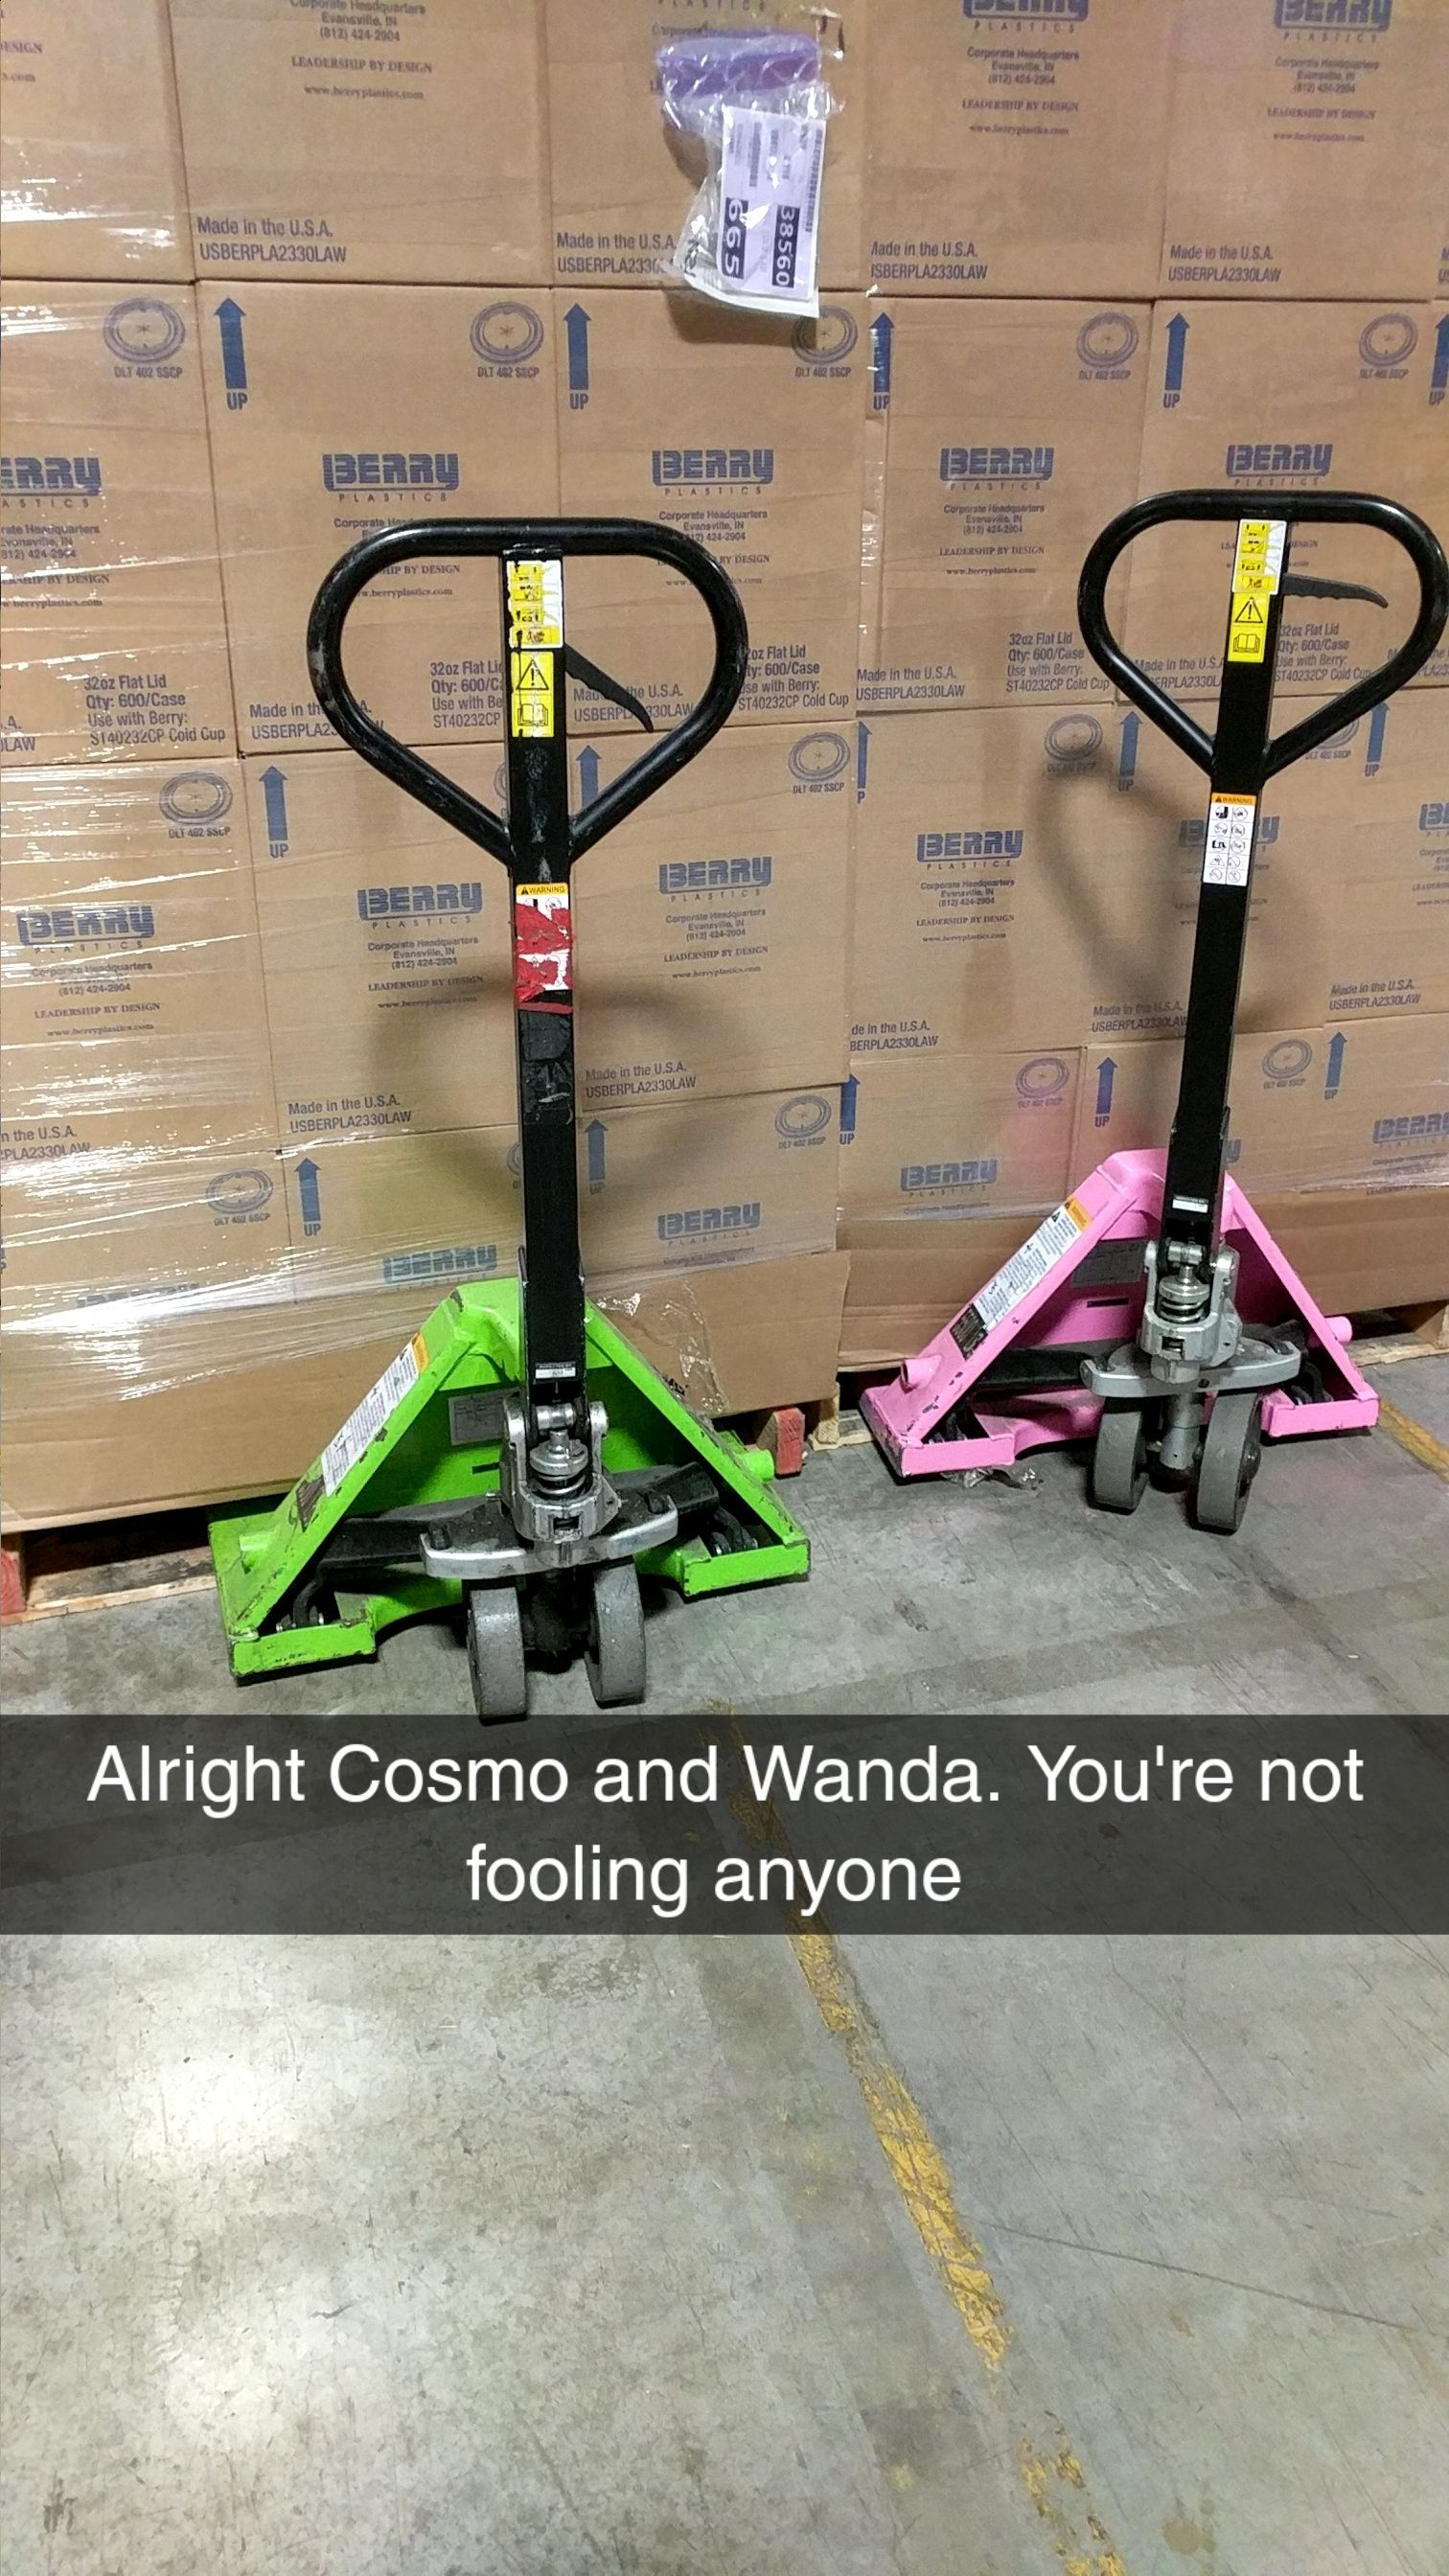 Found Cosmo and Wanda trying to be sneaky at my work today.